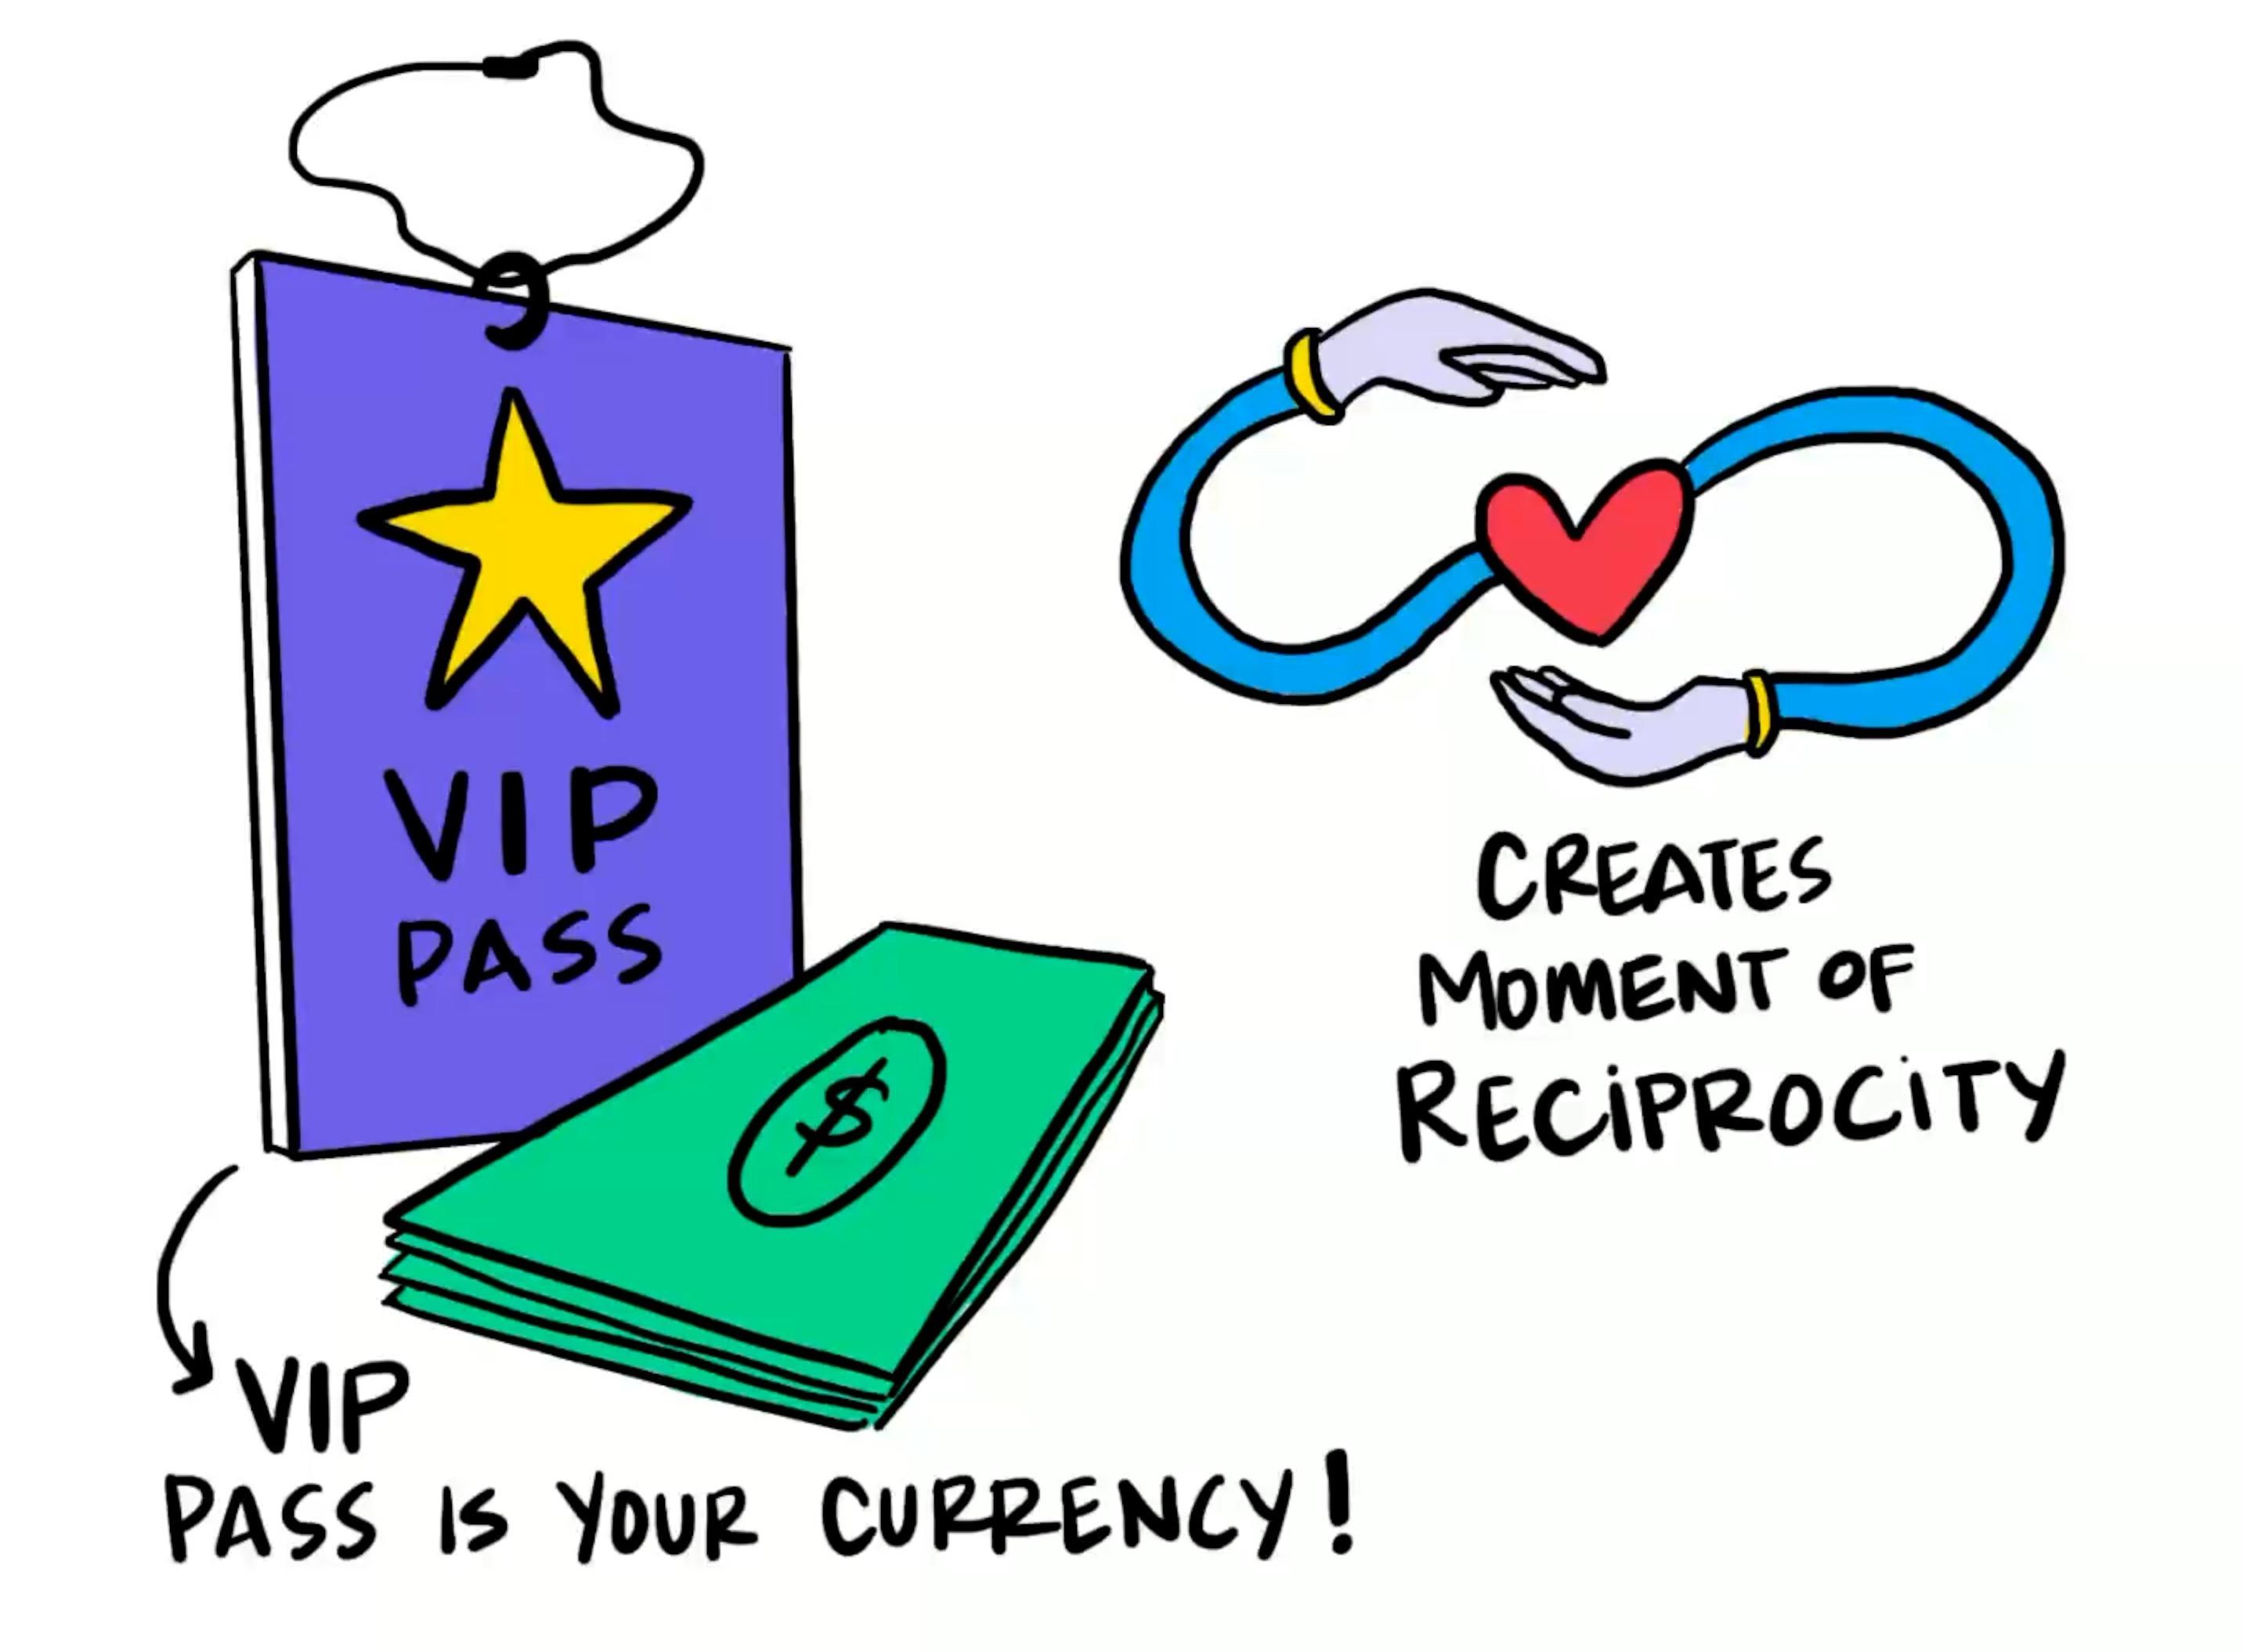 book trade shows vip pass